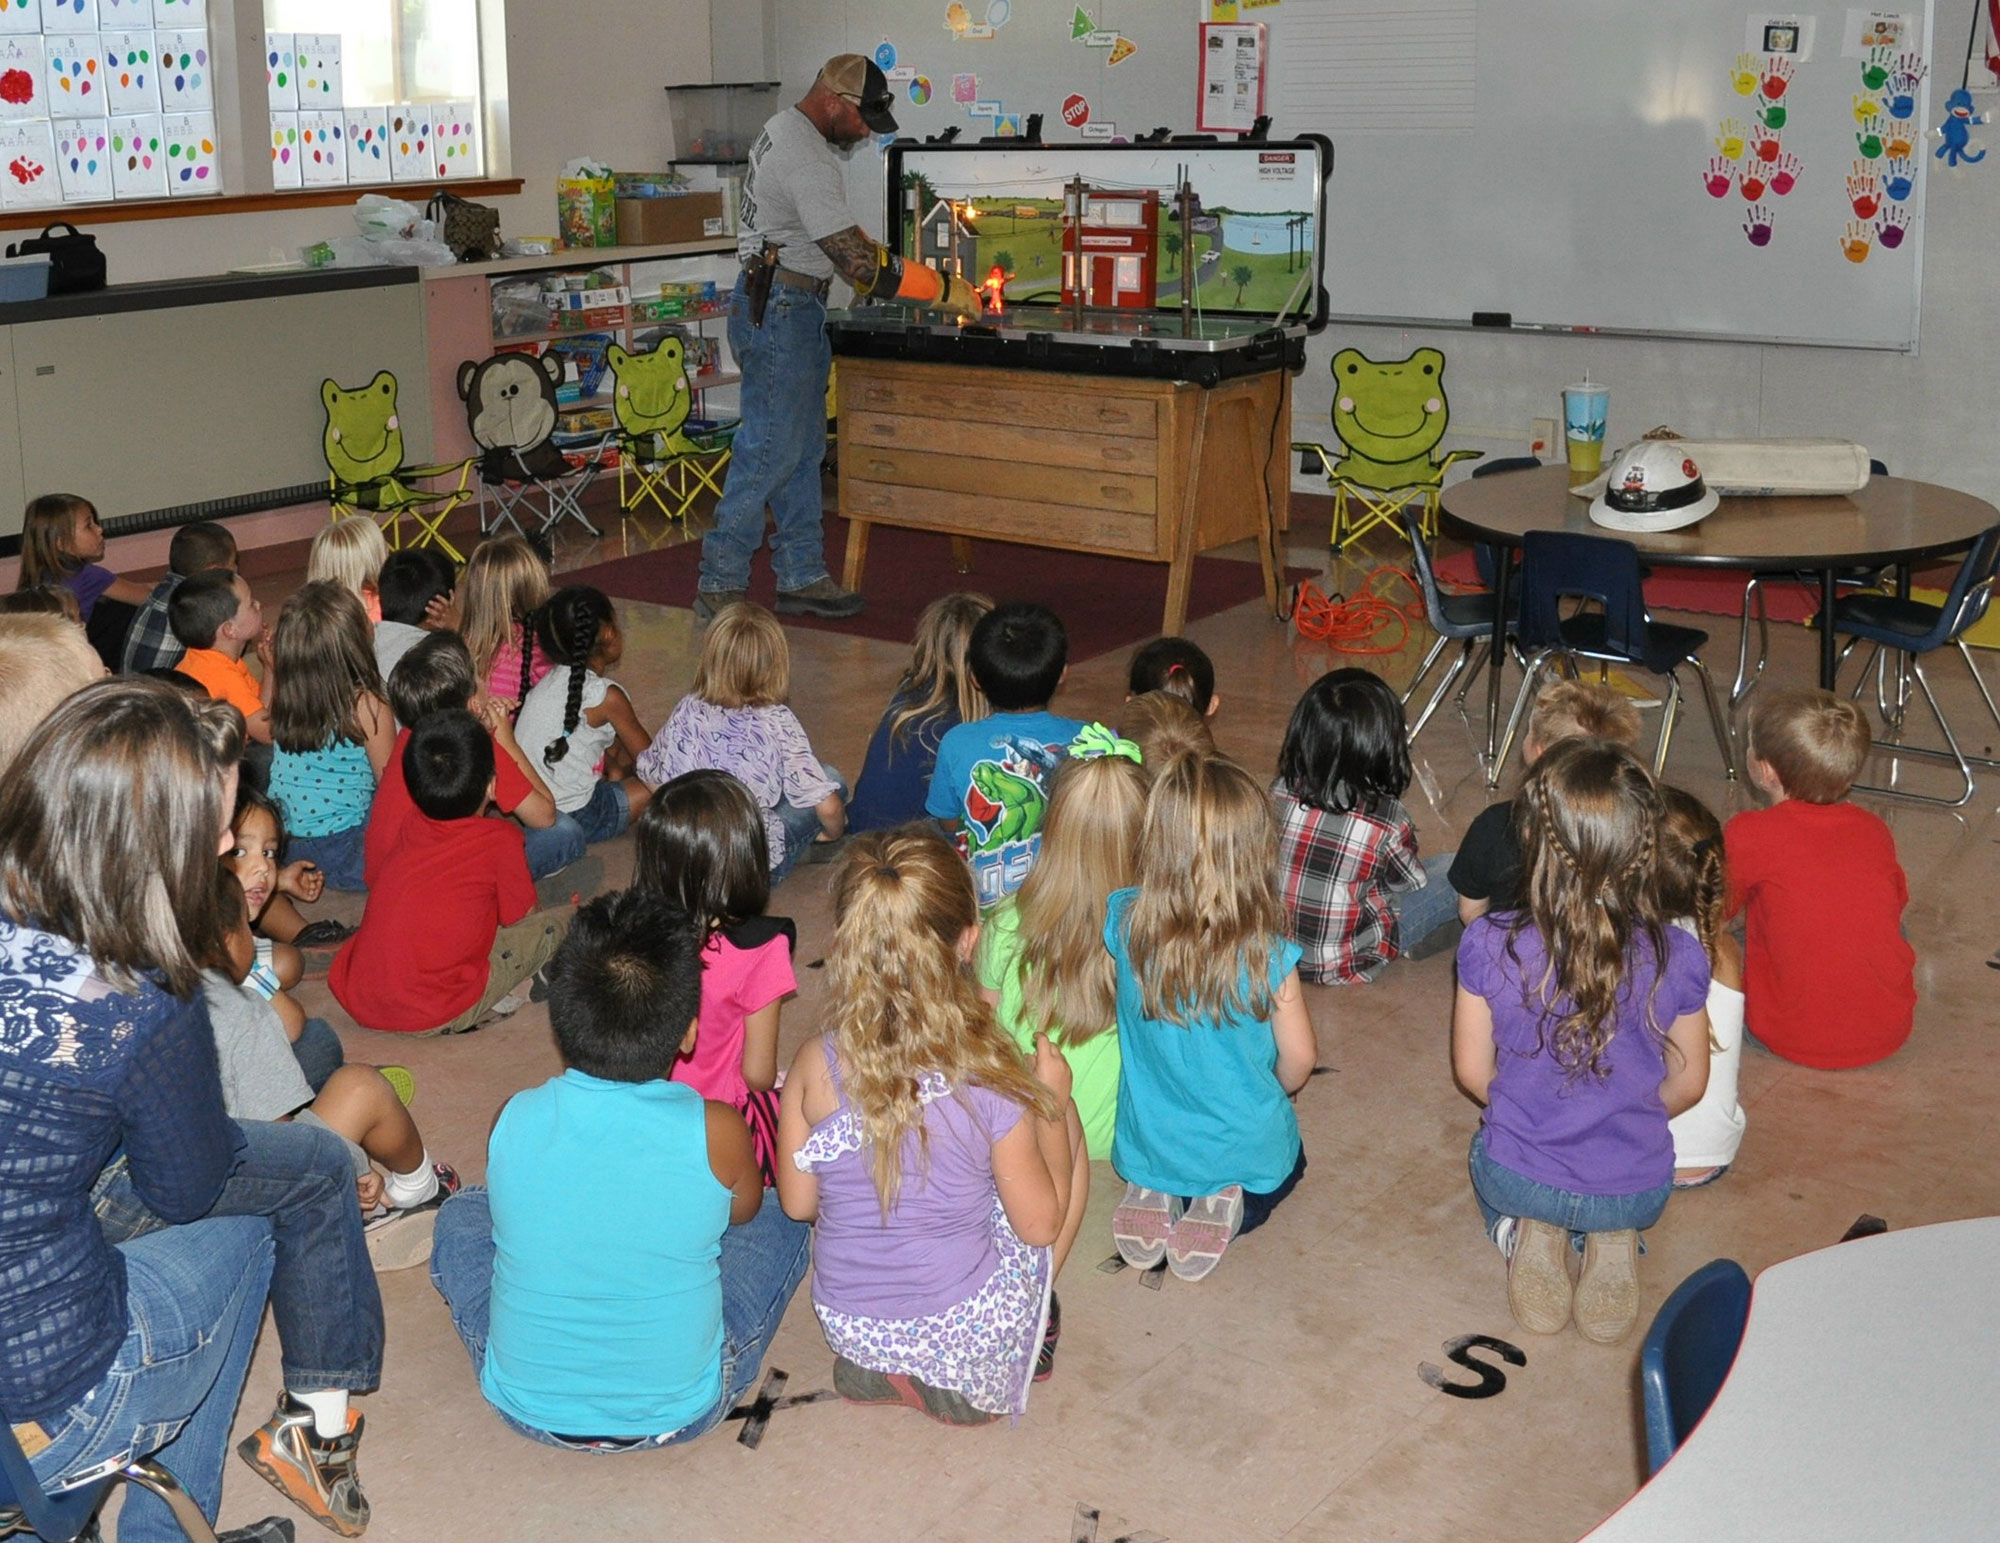 Lineman teaching group of young children about voltage safety